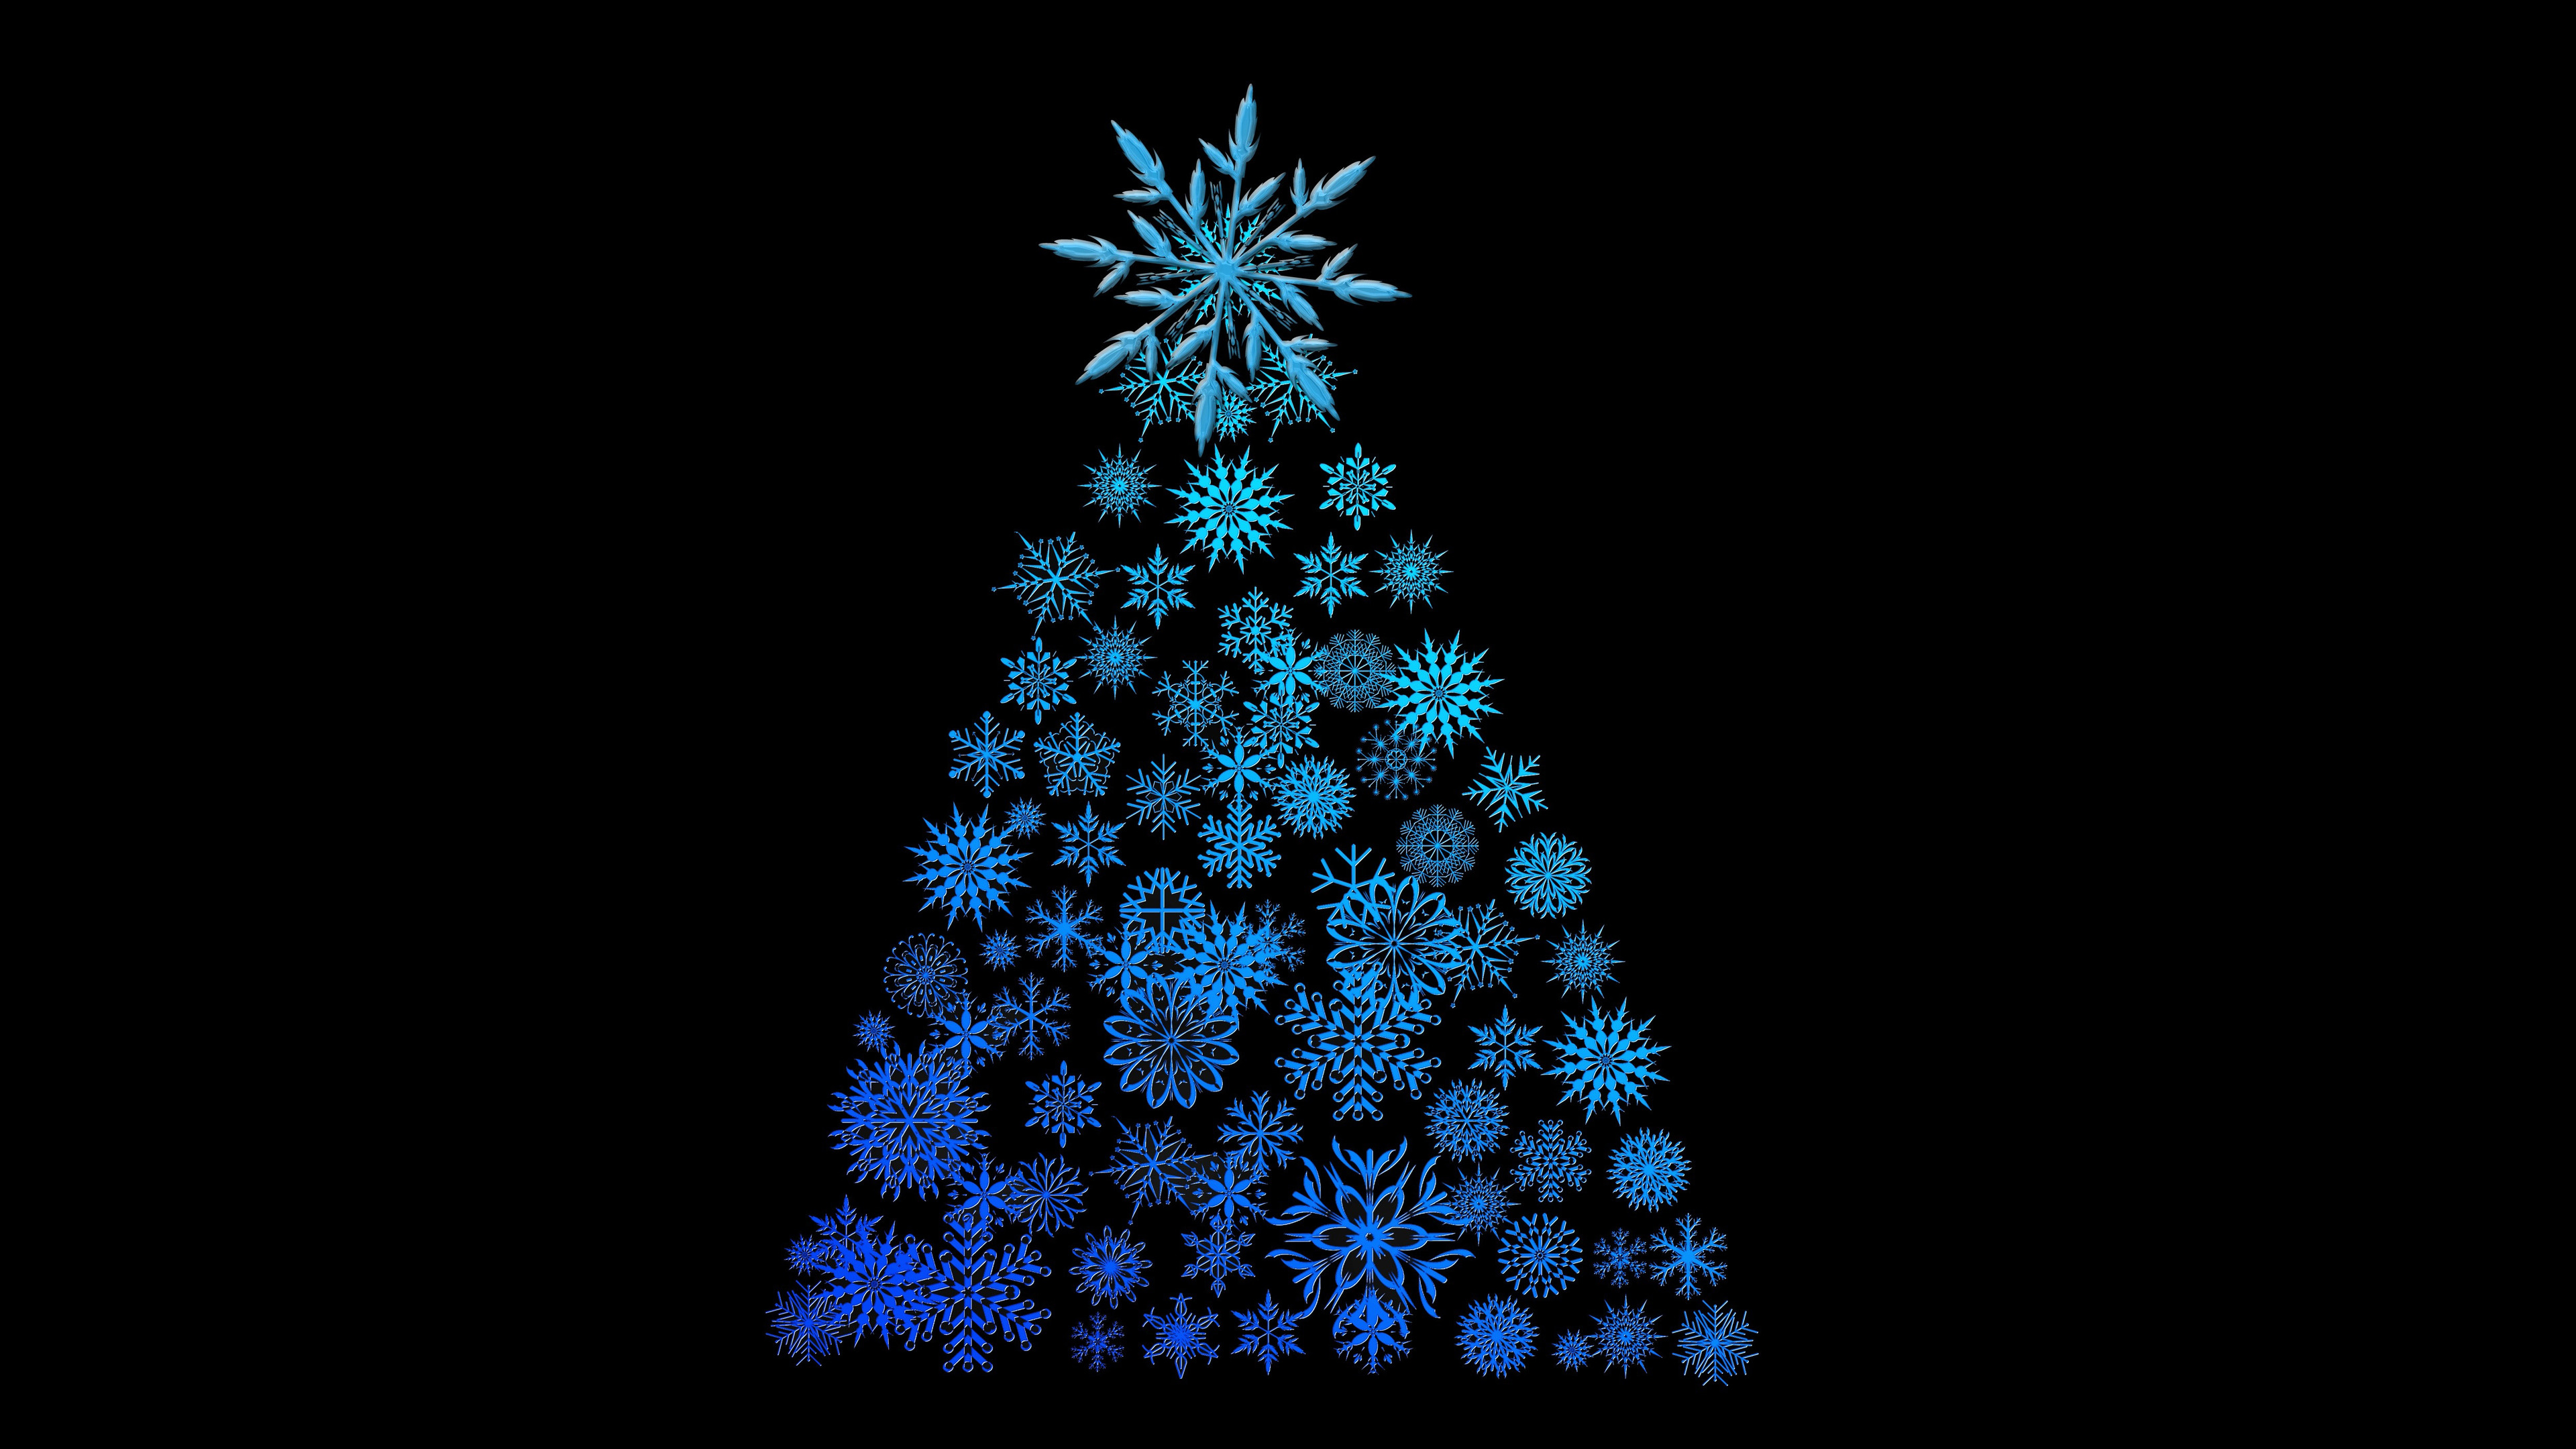 christmas tree digital art 4k 1543946520 - Christmas Tree Digital Art 4k - tree wallpapers, minimalism wallpapers, holidays wallpapers, hd-wallpapers, digital art wallpapers, christmas wallpapers, celebrations wallpapers, 4k-wallpapers